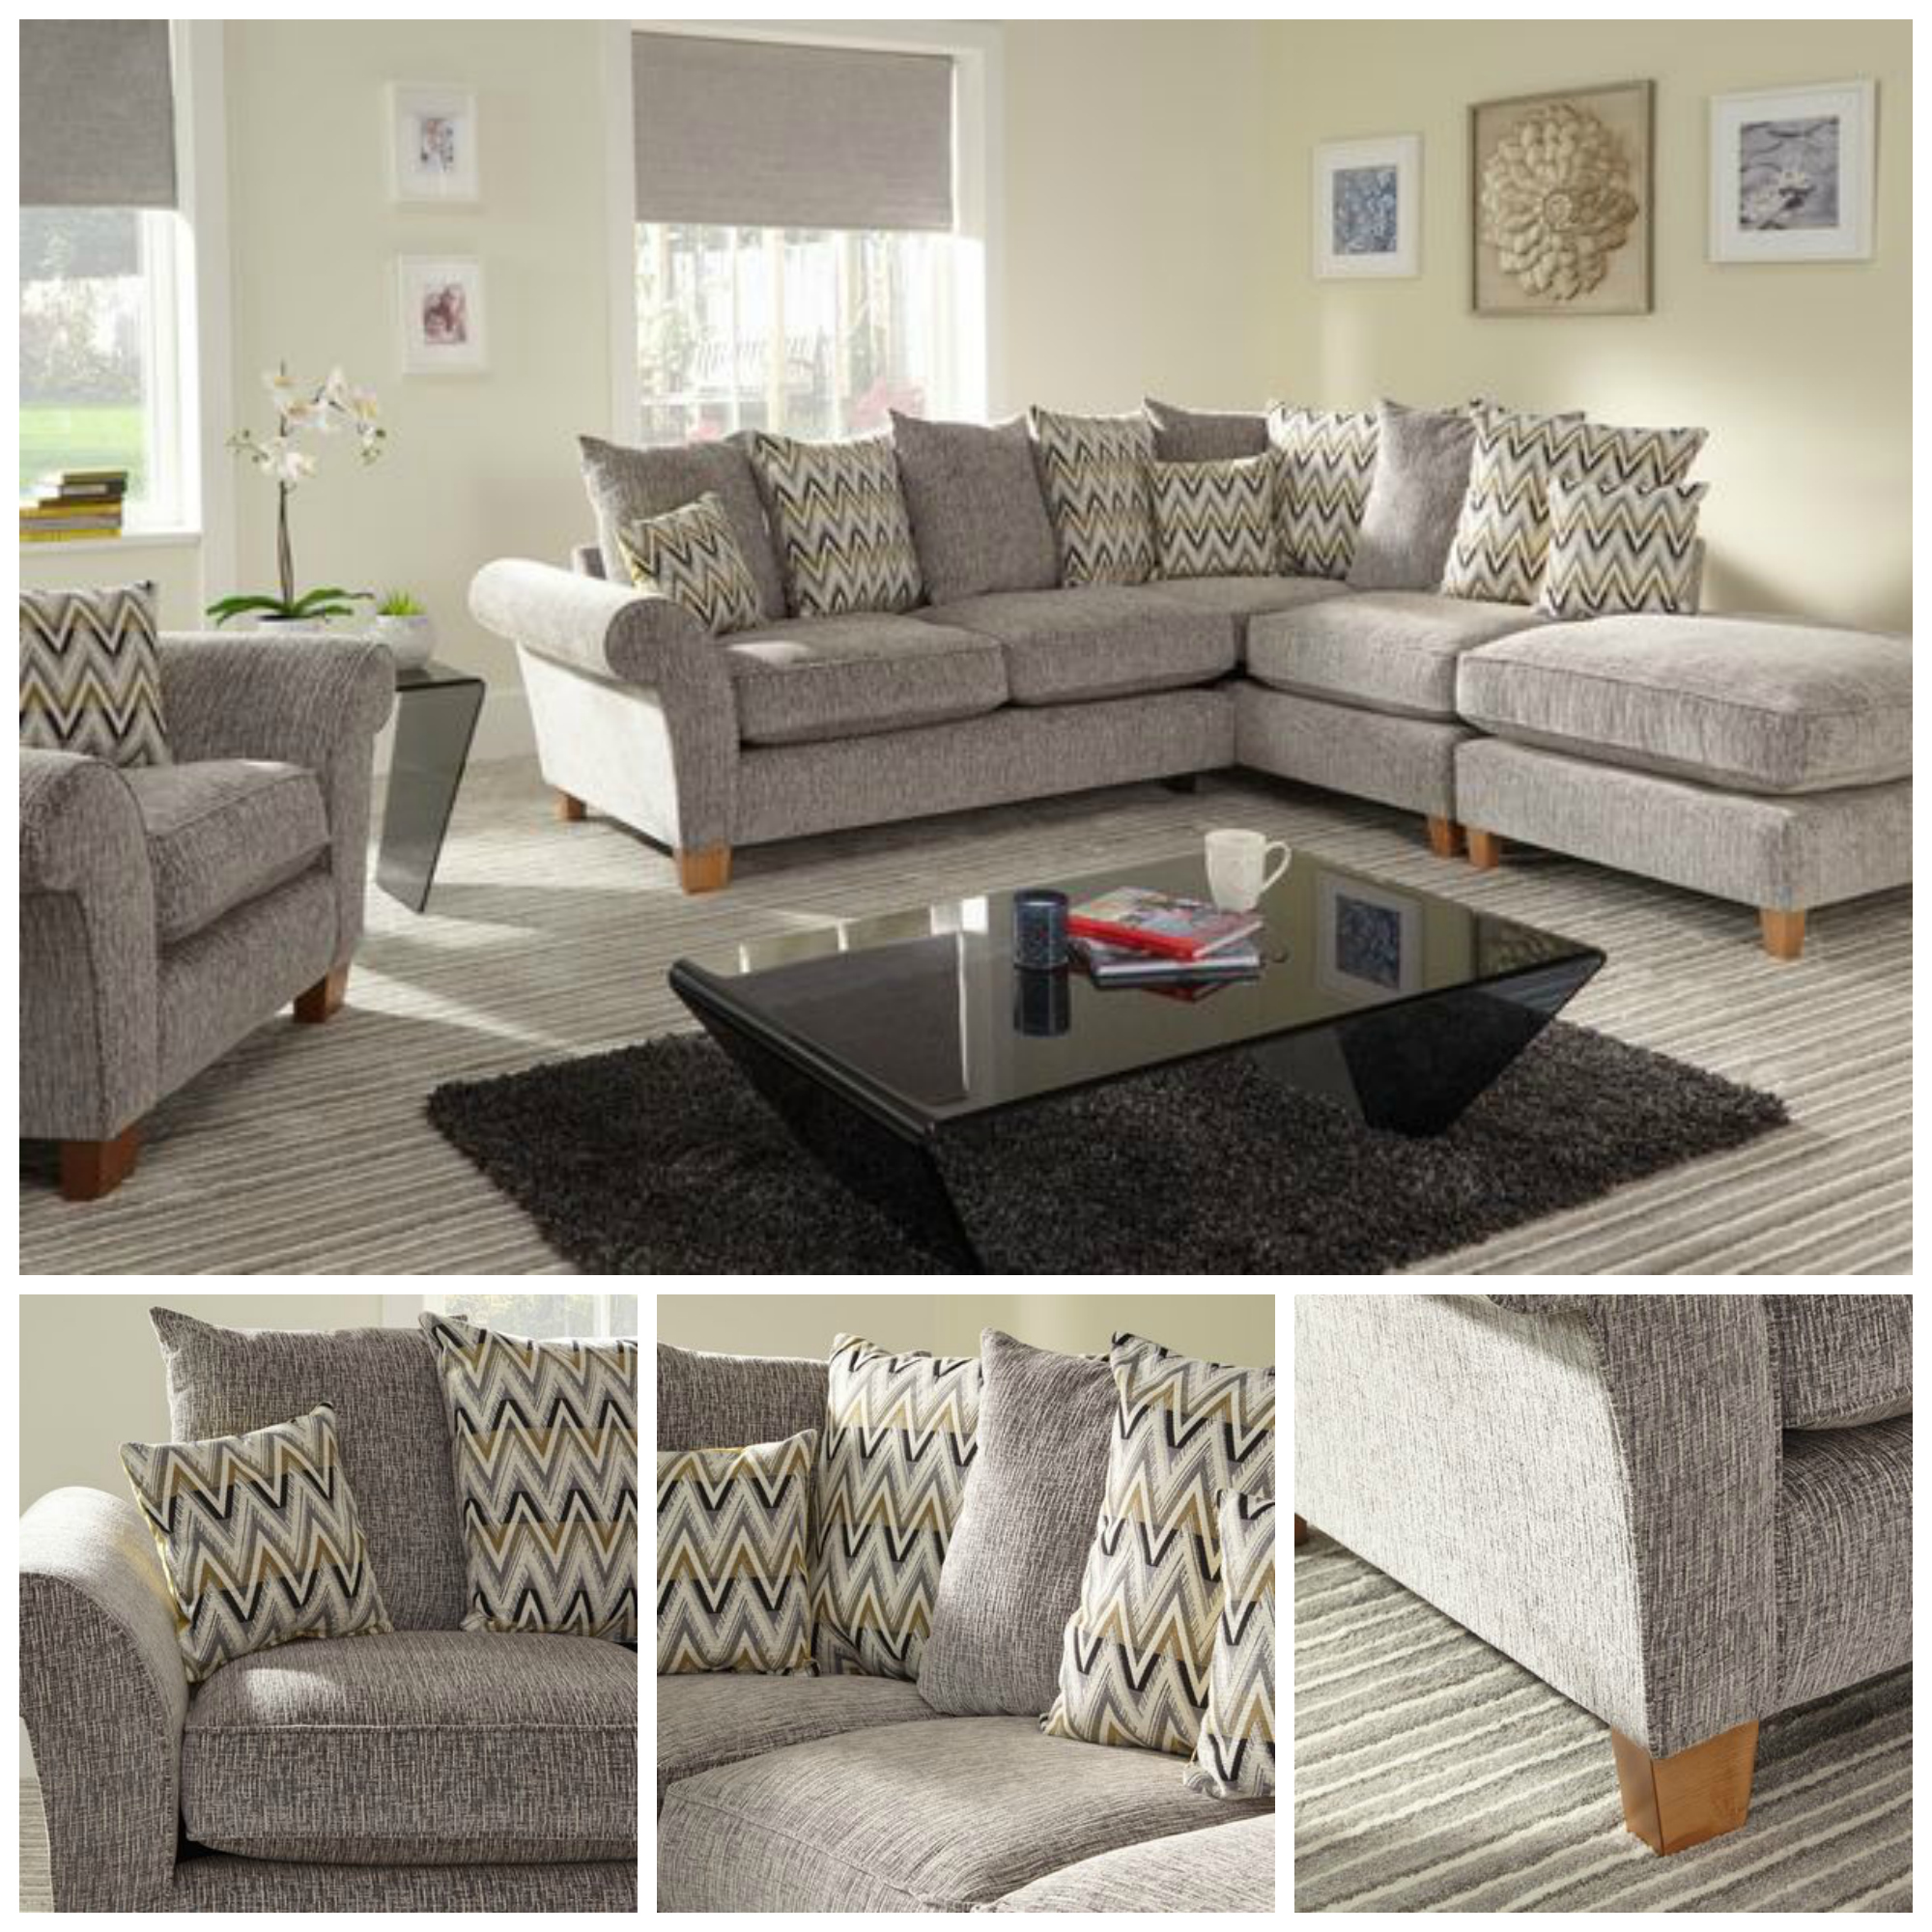 TOP TIPS TO REMEMBER WHEN BUYING A NEW SOFA